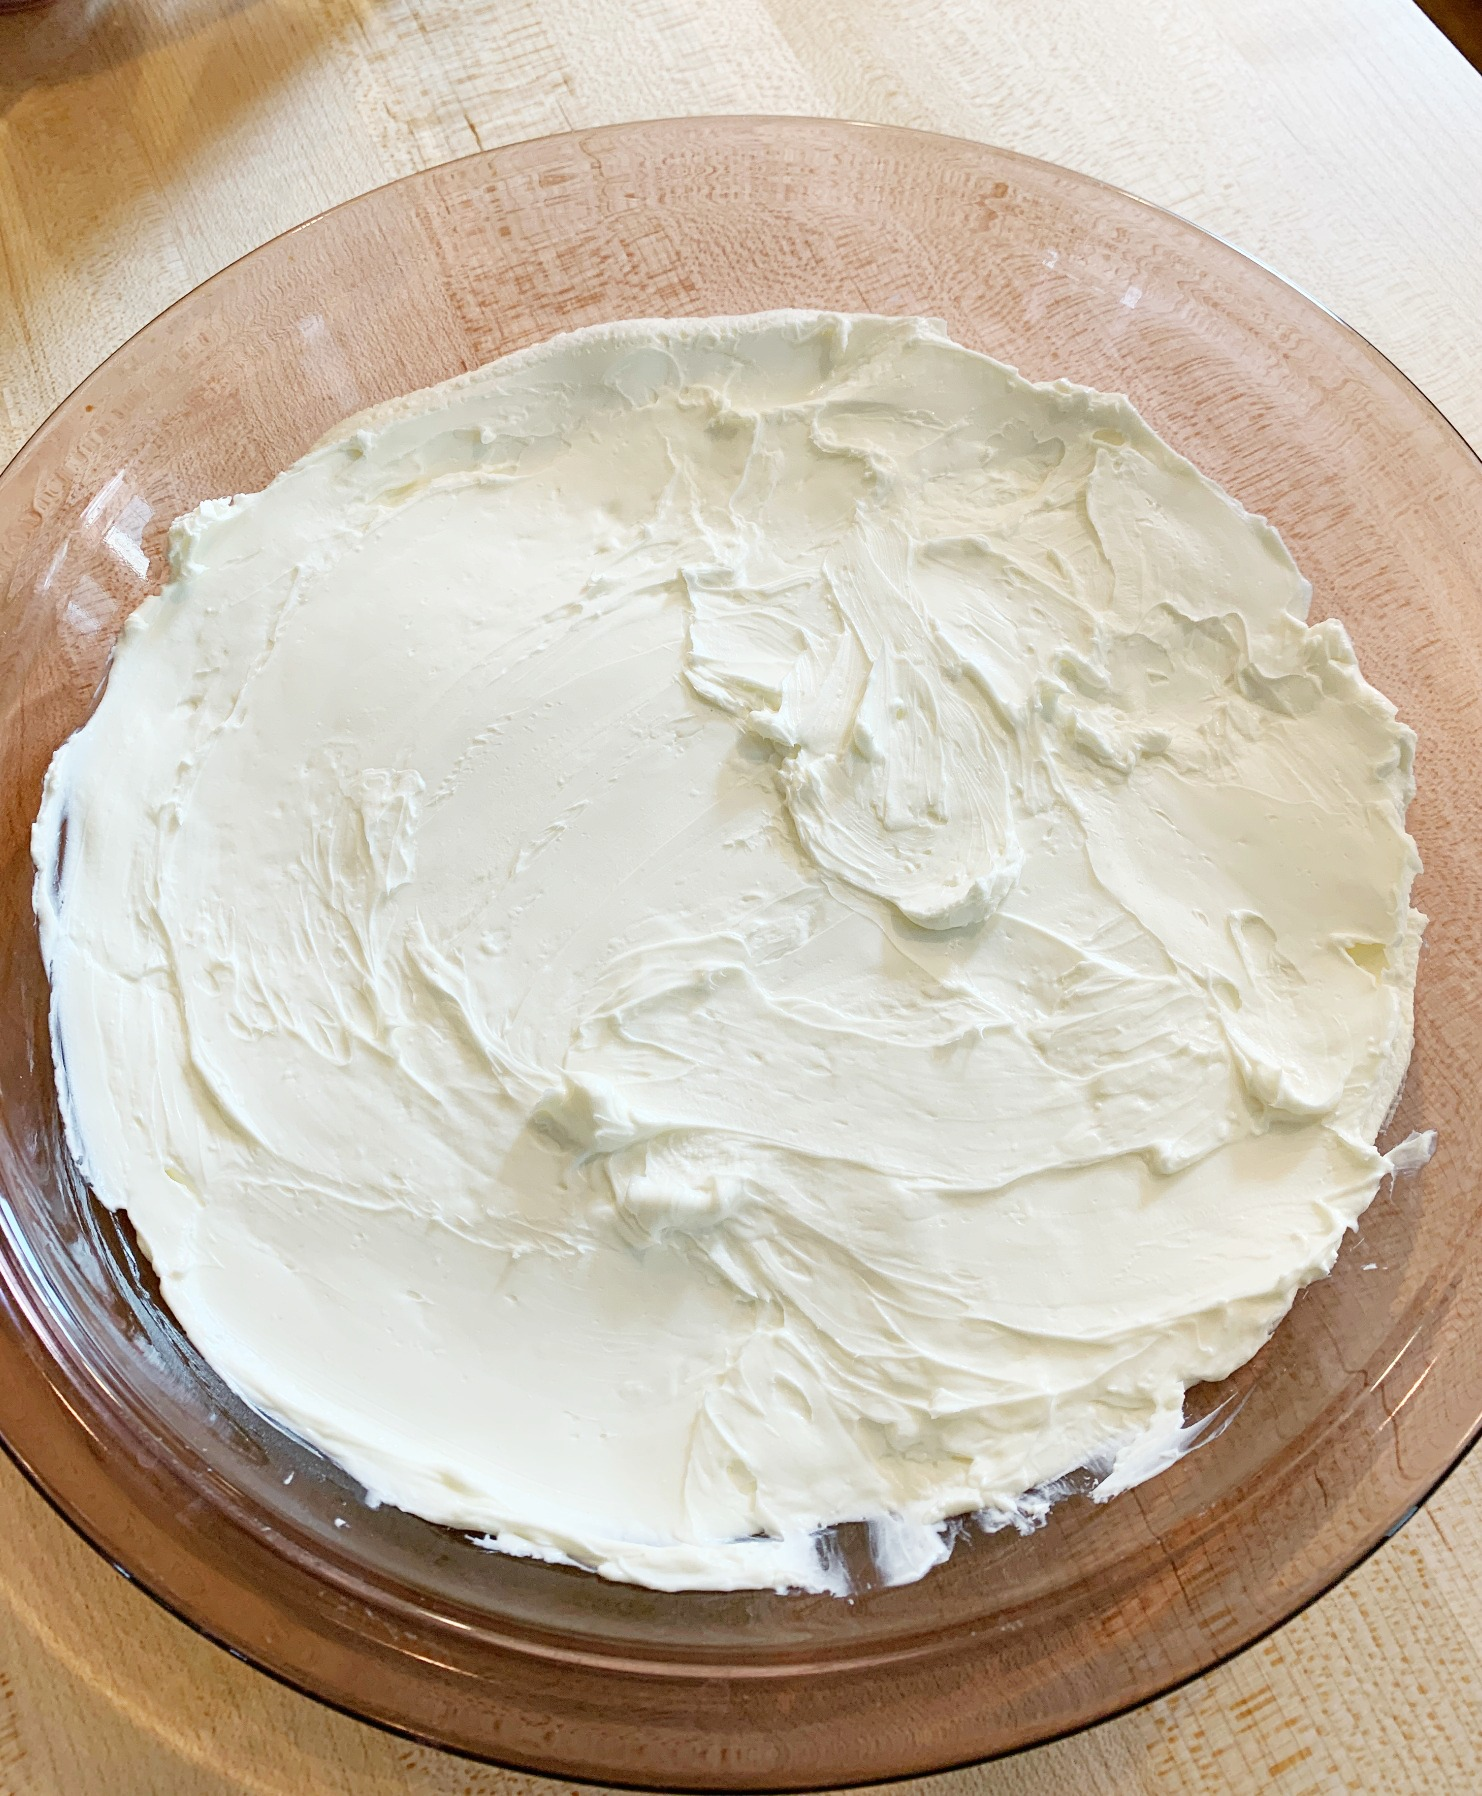 pie dish with cream cheese spread on the bottom